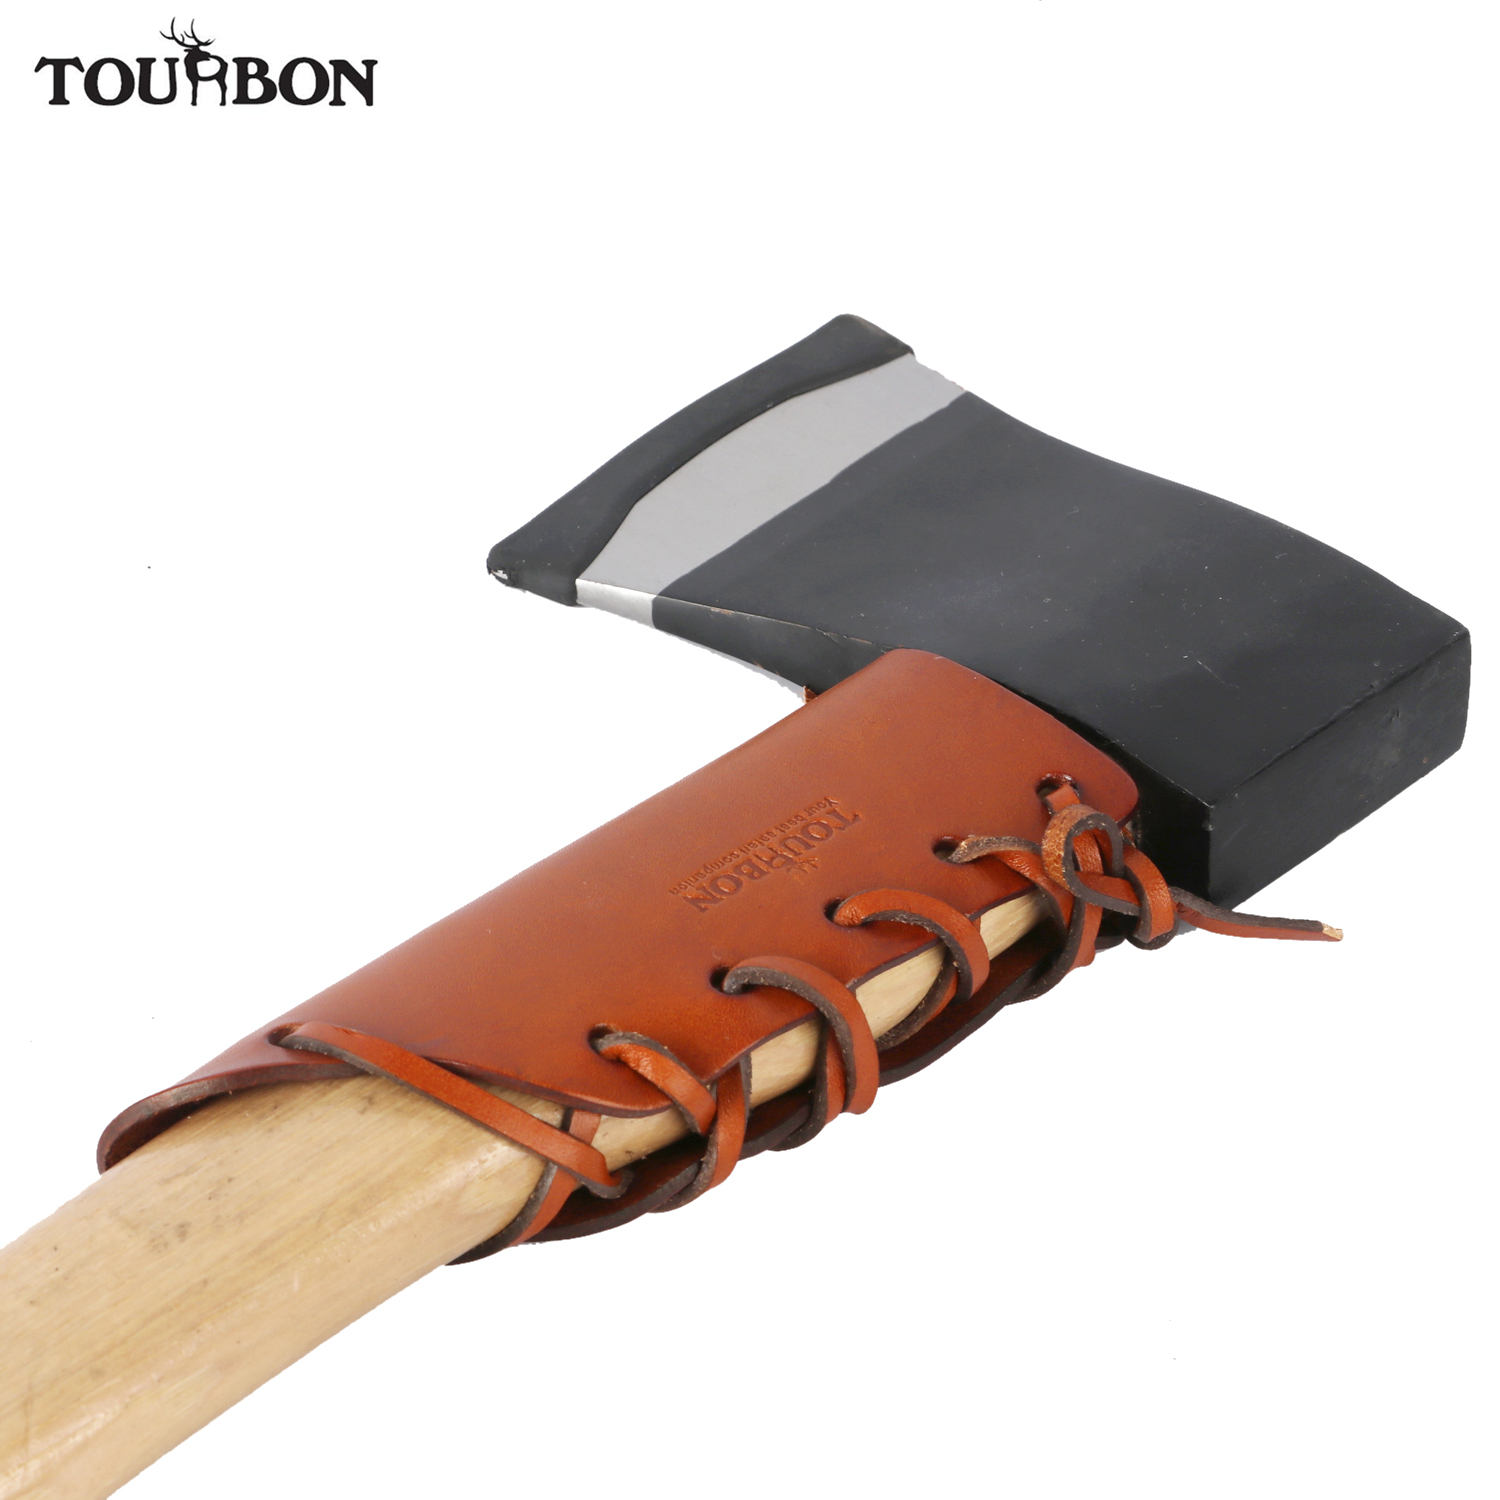 Tourbon Hunting Premium Genuine Leather Ax Collar Guard Sheath Hatchet Carrier Axe Head Cover Pouch image